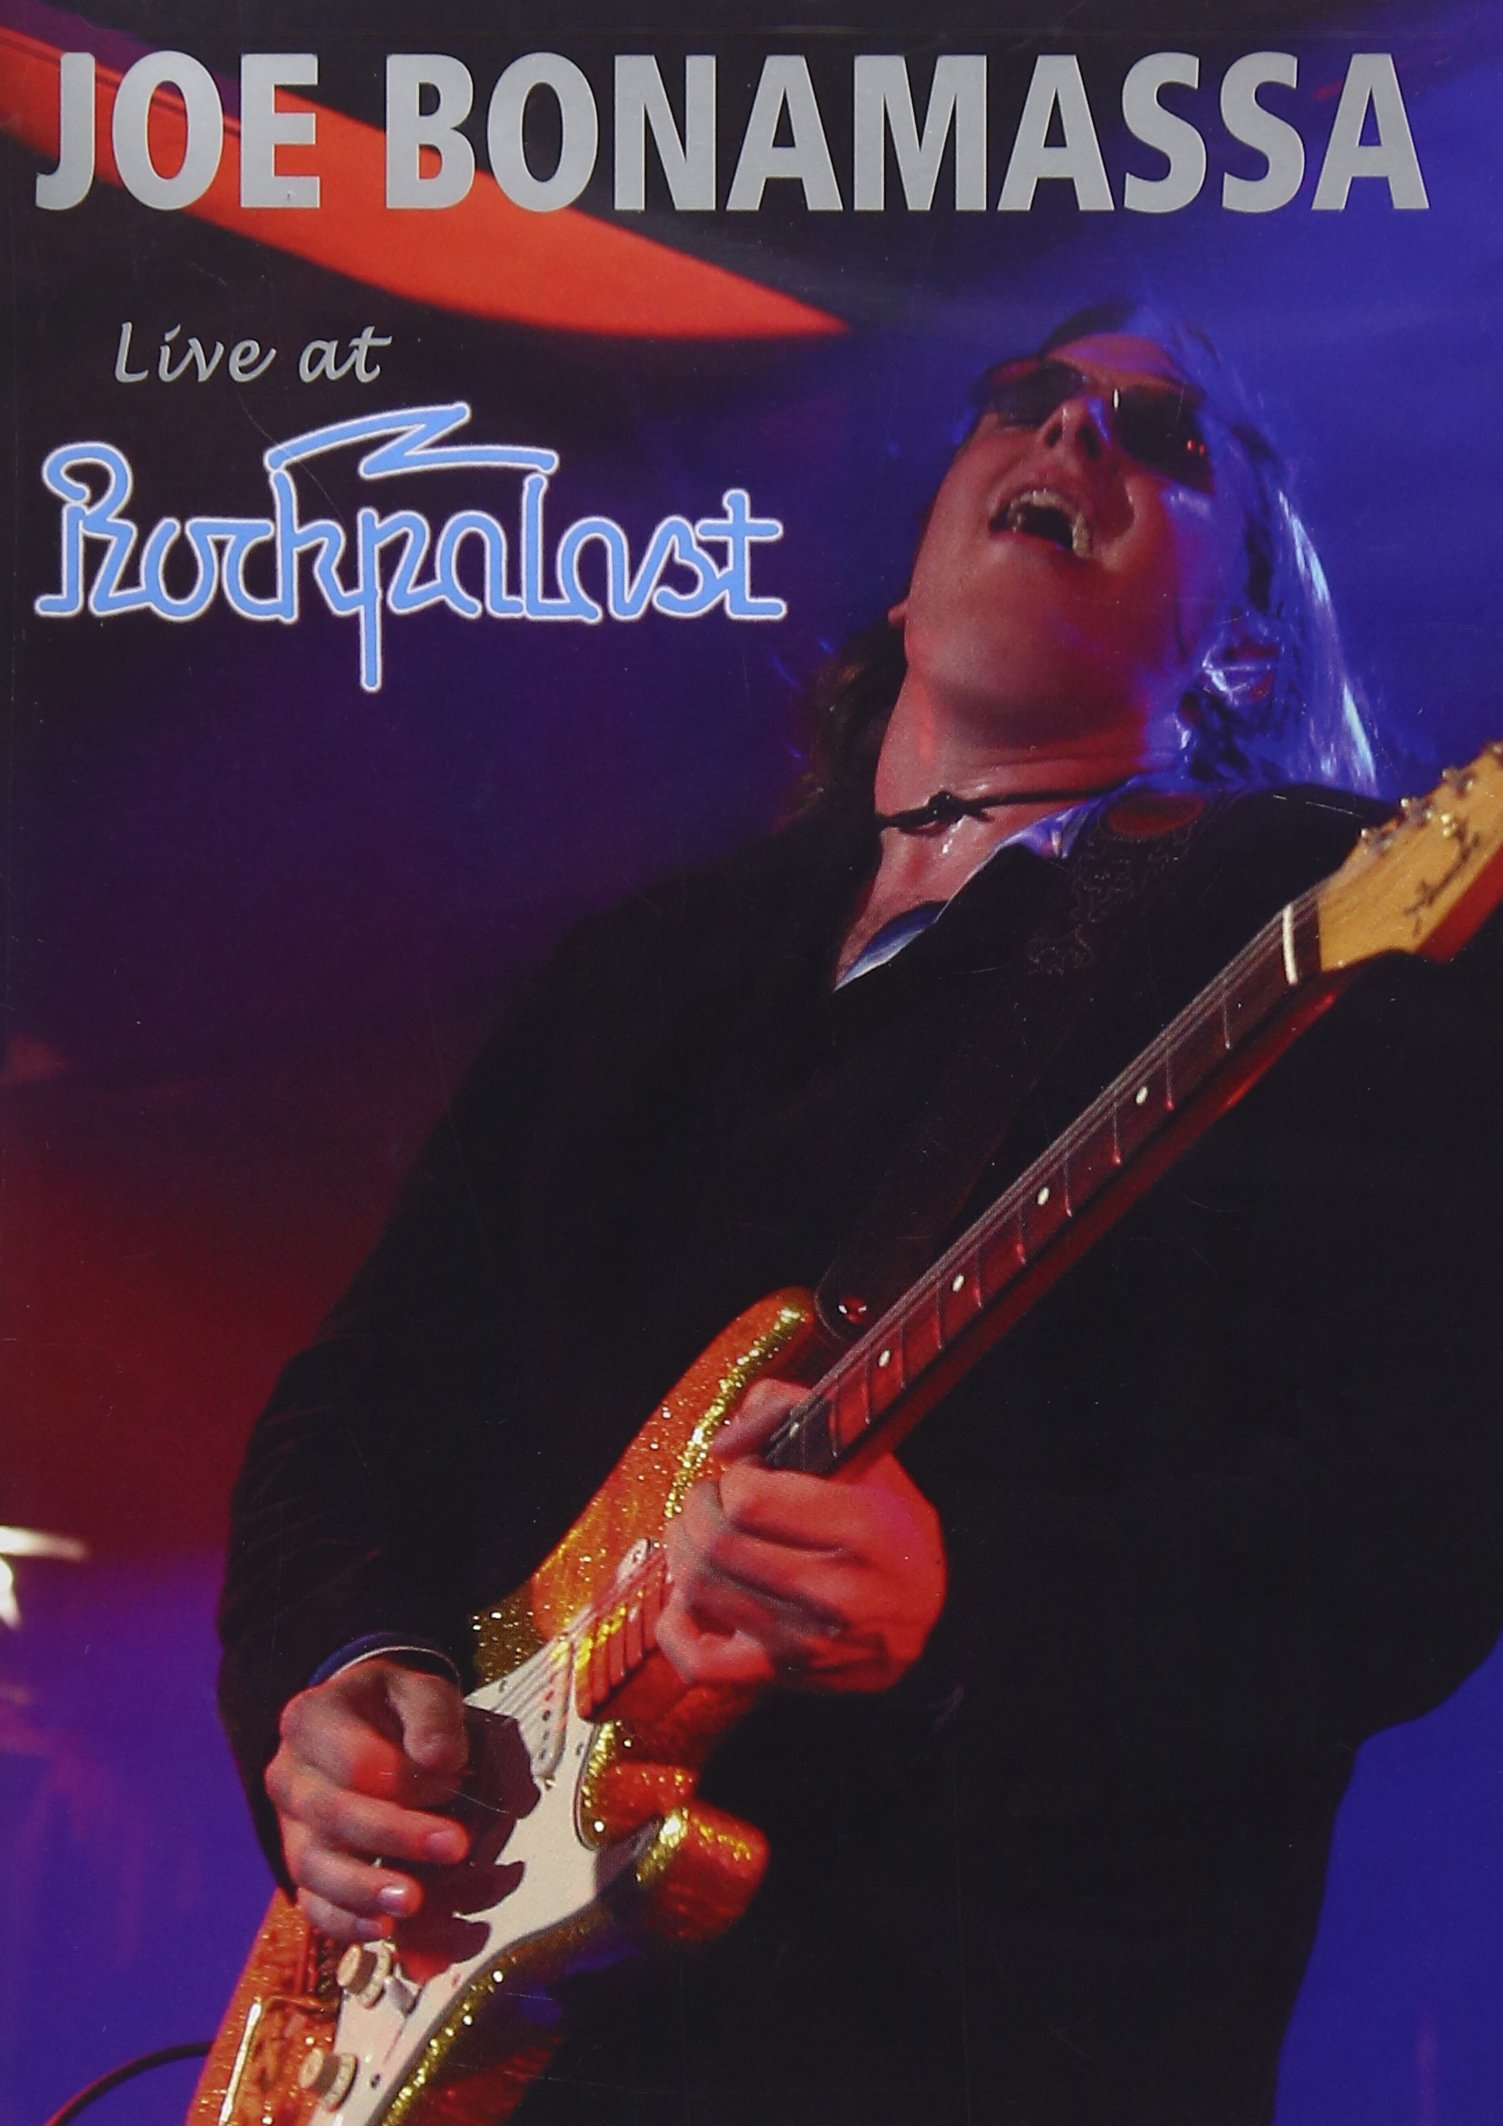 Joe Bonamassa - Live at Rockpalast by DVD